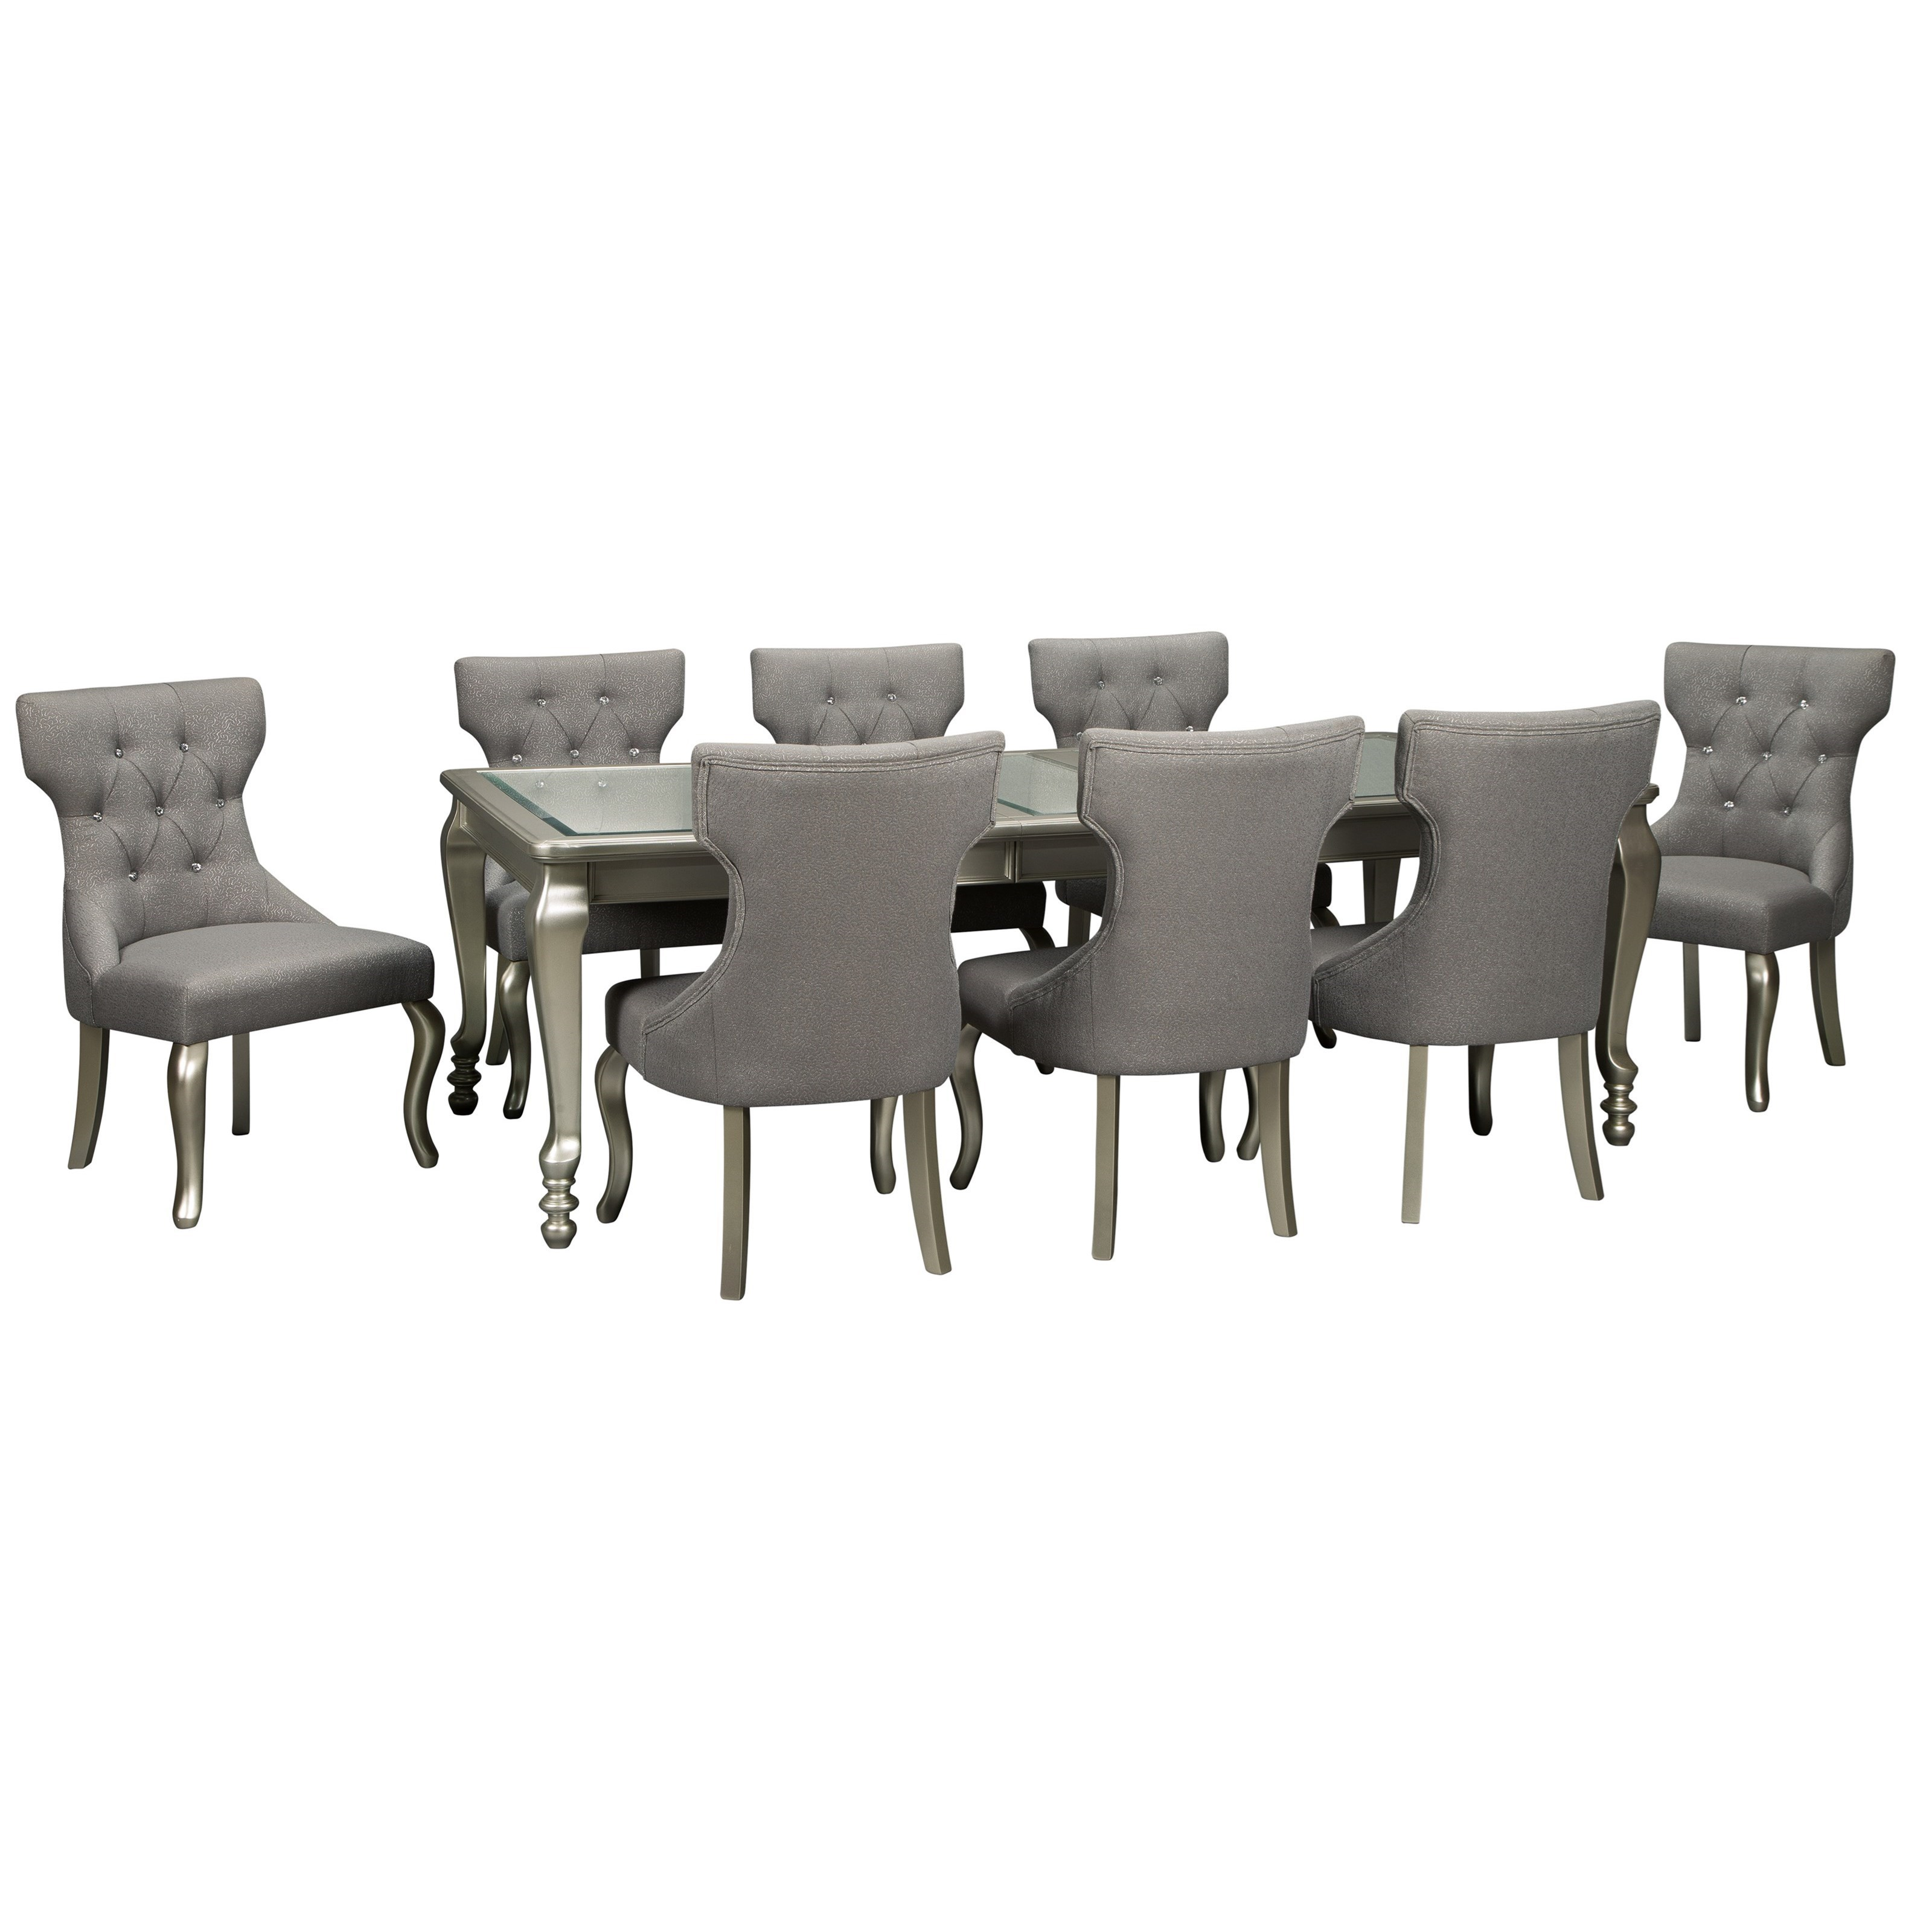 Signature Design By Ashley Coralayne 9 Piece Rectangular Dining Room Extension Table Set Value City Furniture Dining 7 Or More Piece Sets